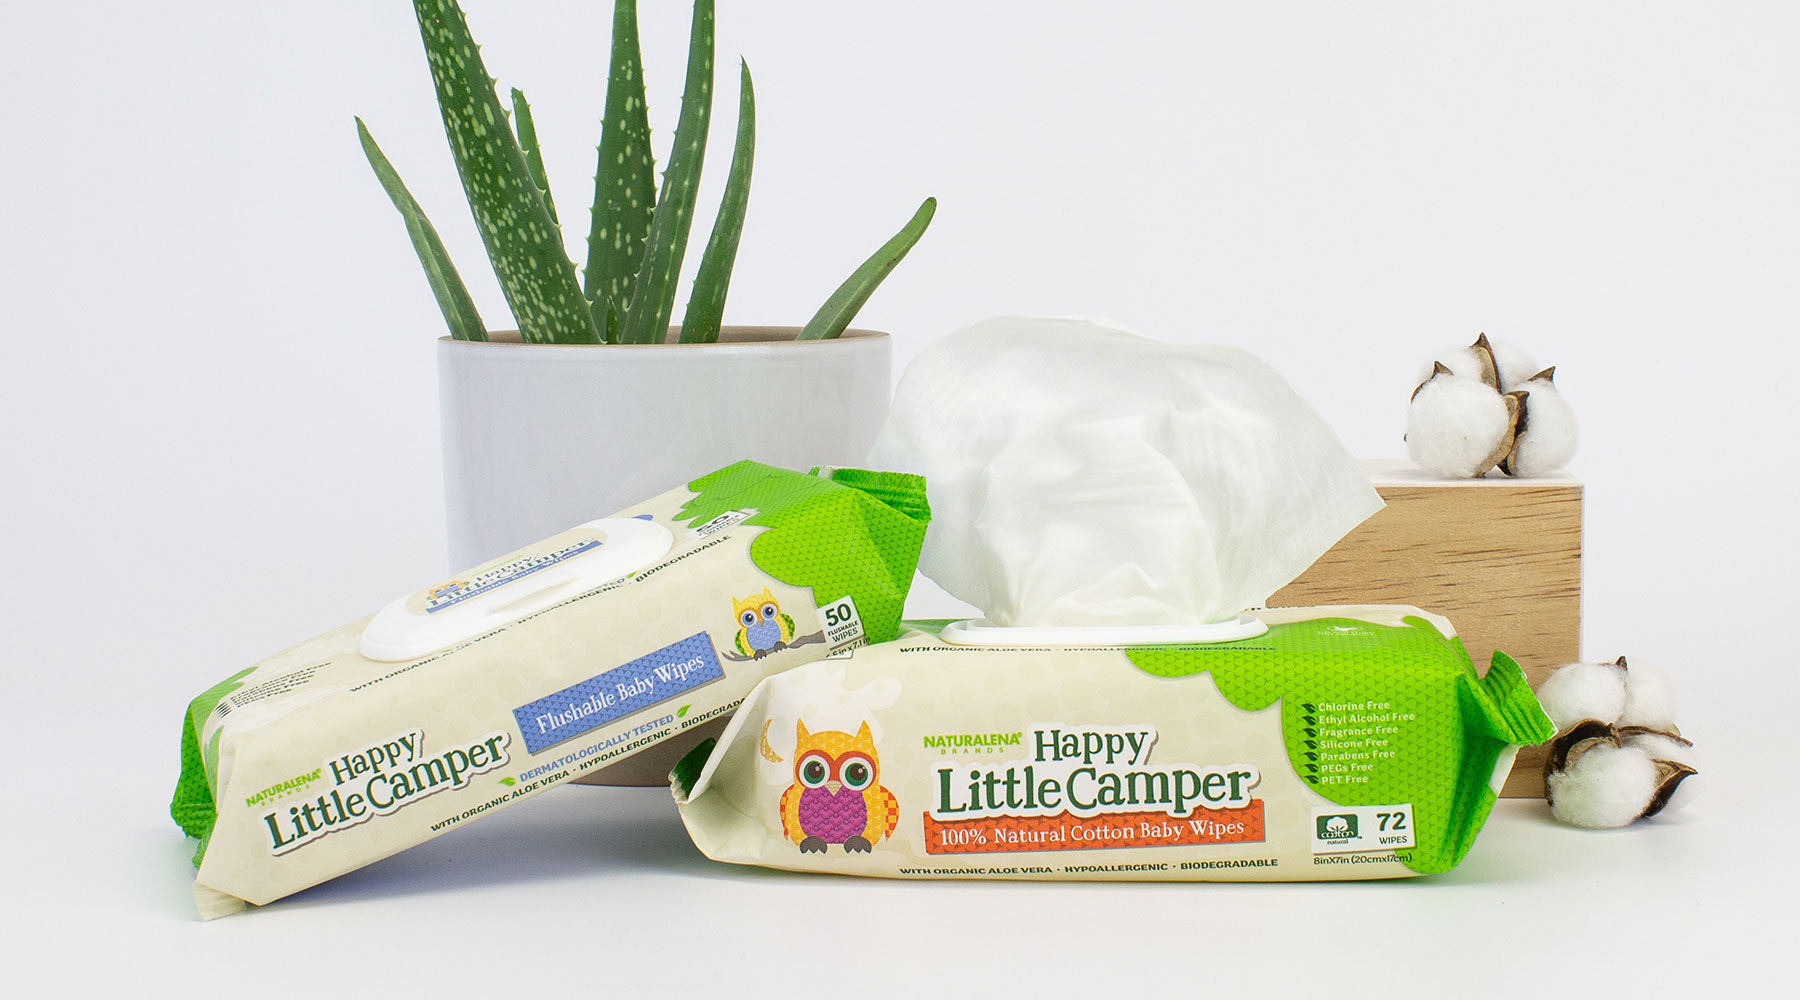 Happy Little Camper baby wipes with Aloe Vera Plant and Cotton Buds